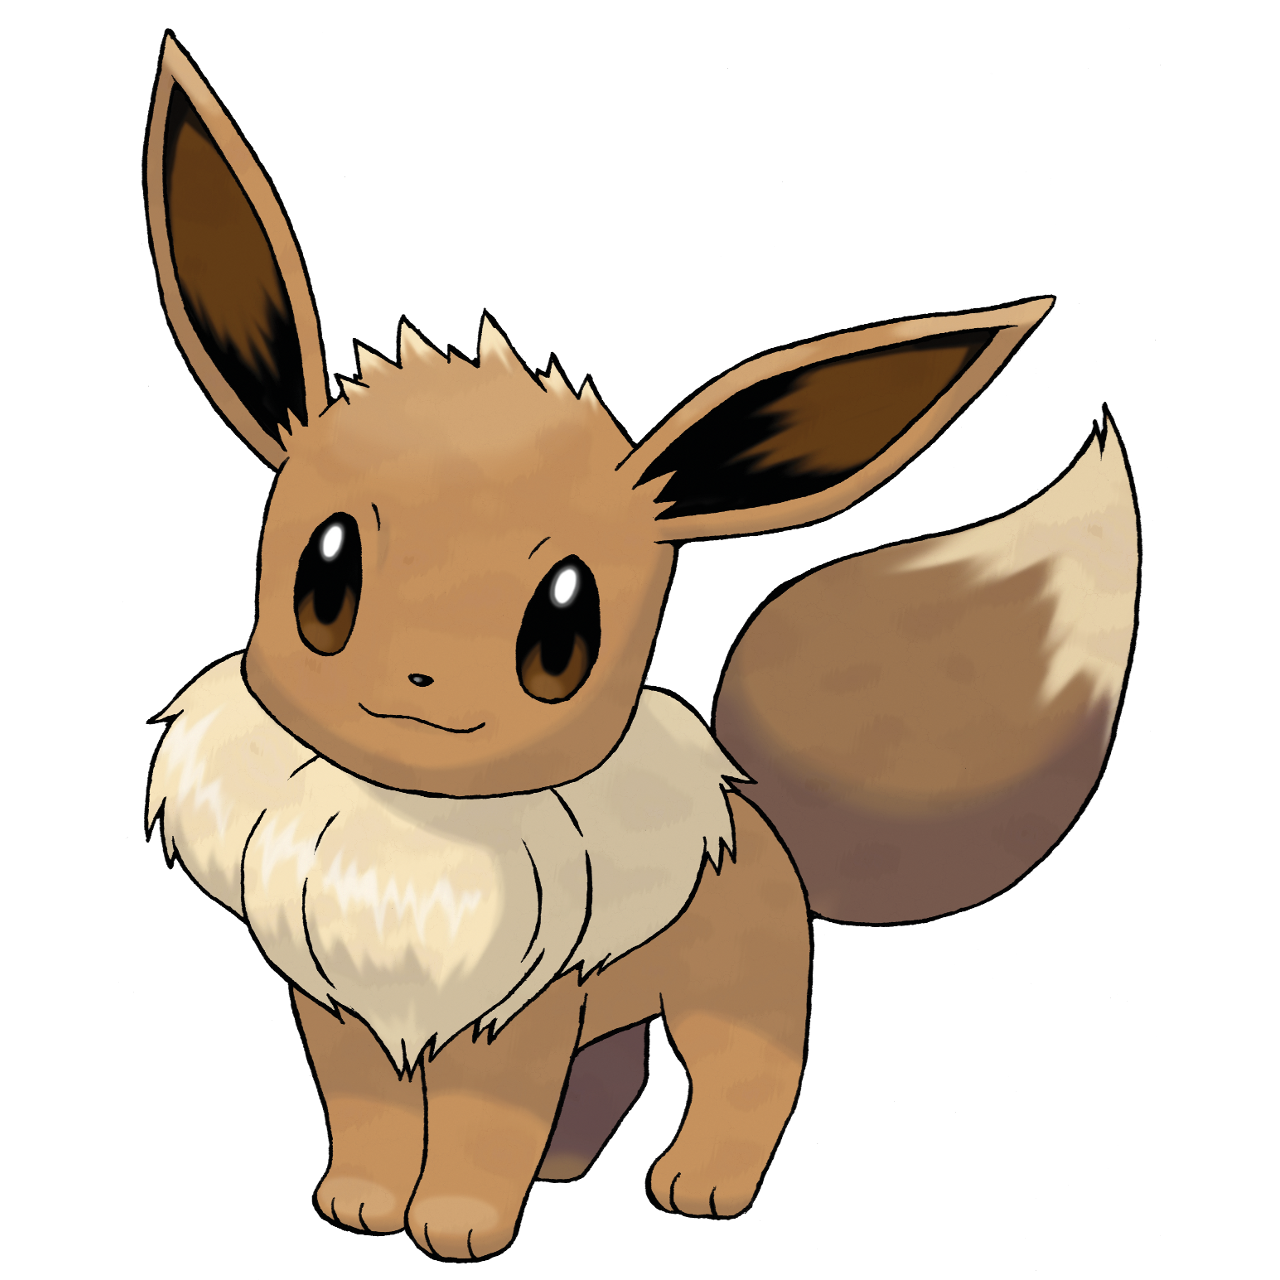 Eevee project pokemon wiki. Number 1 clipart character